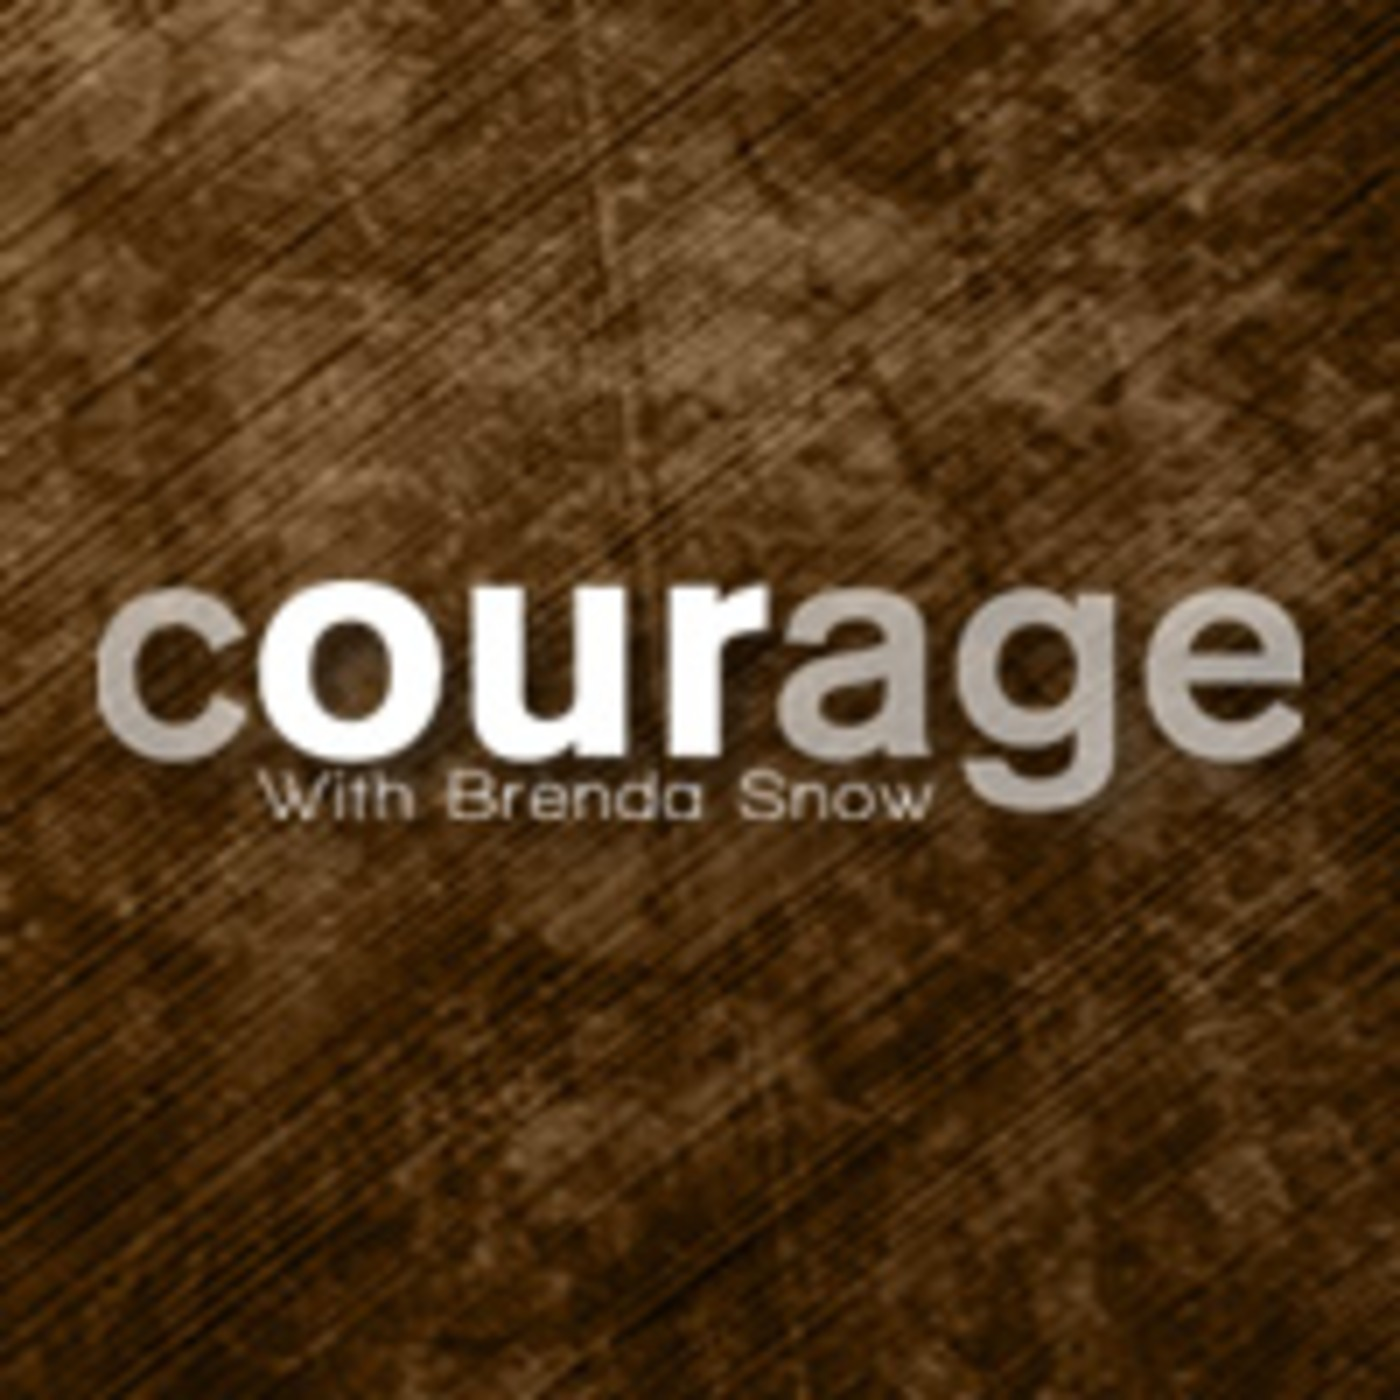 Courage with Brenda Snow